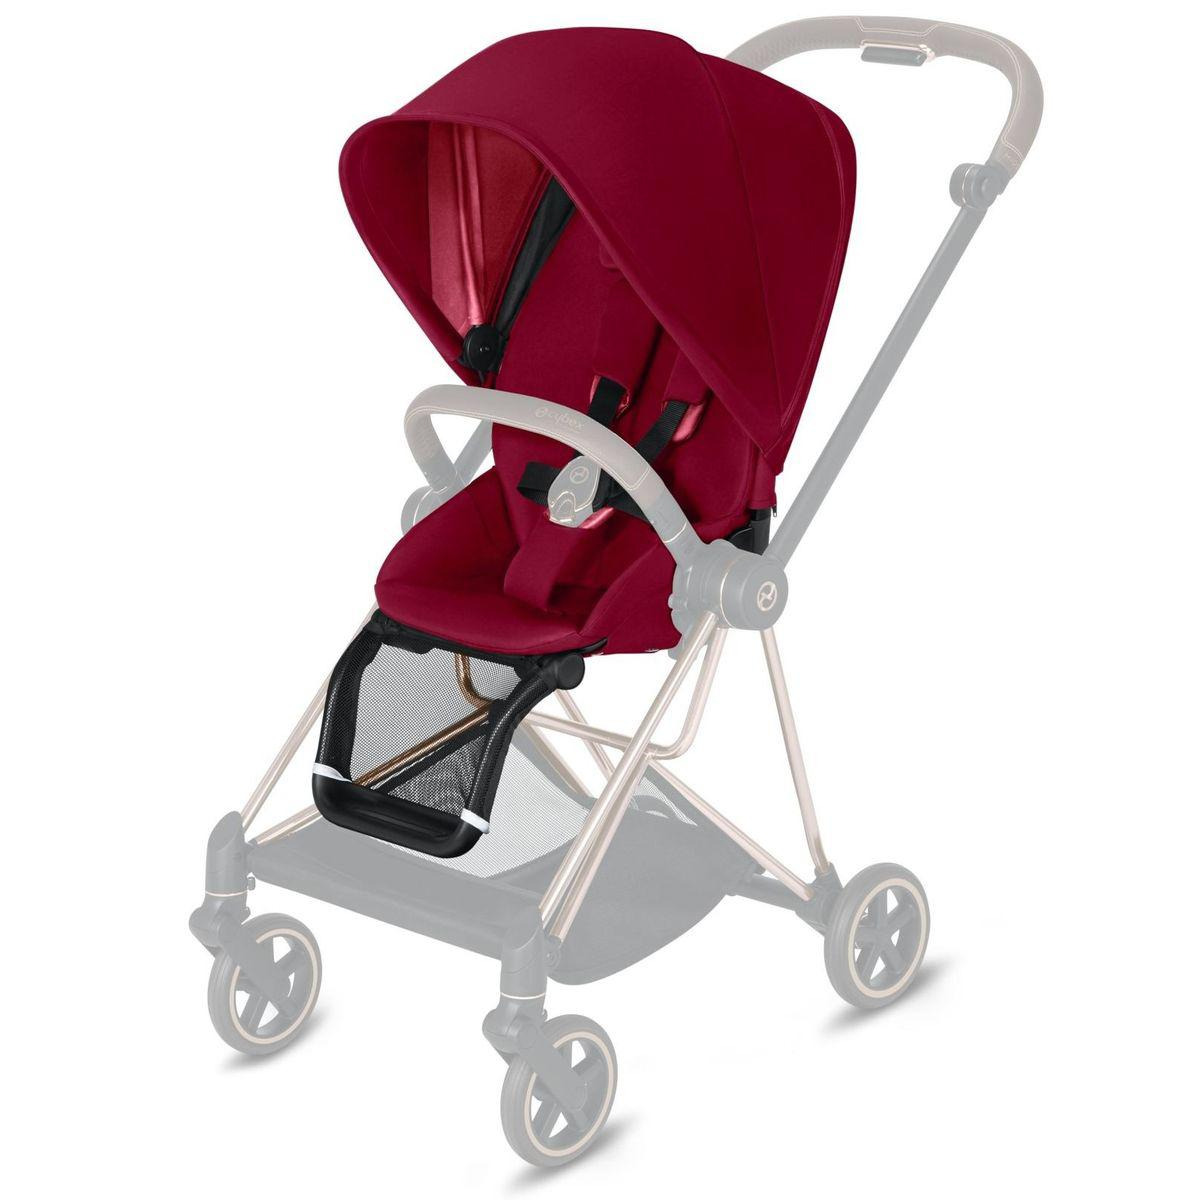 Asiento-pack silla MIOS Cybex true red-red